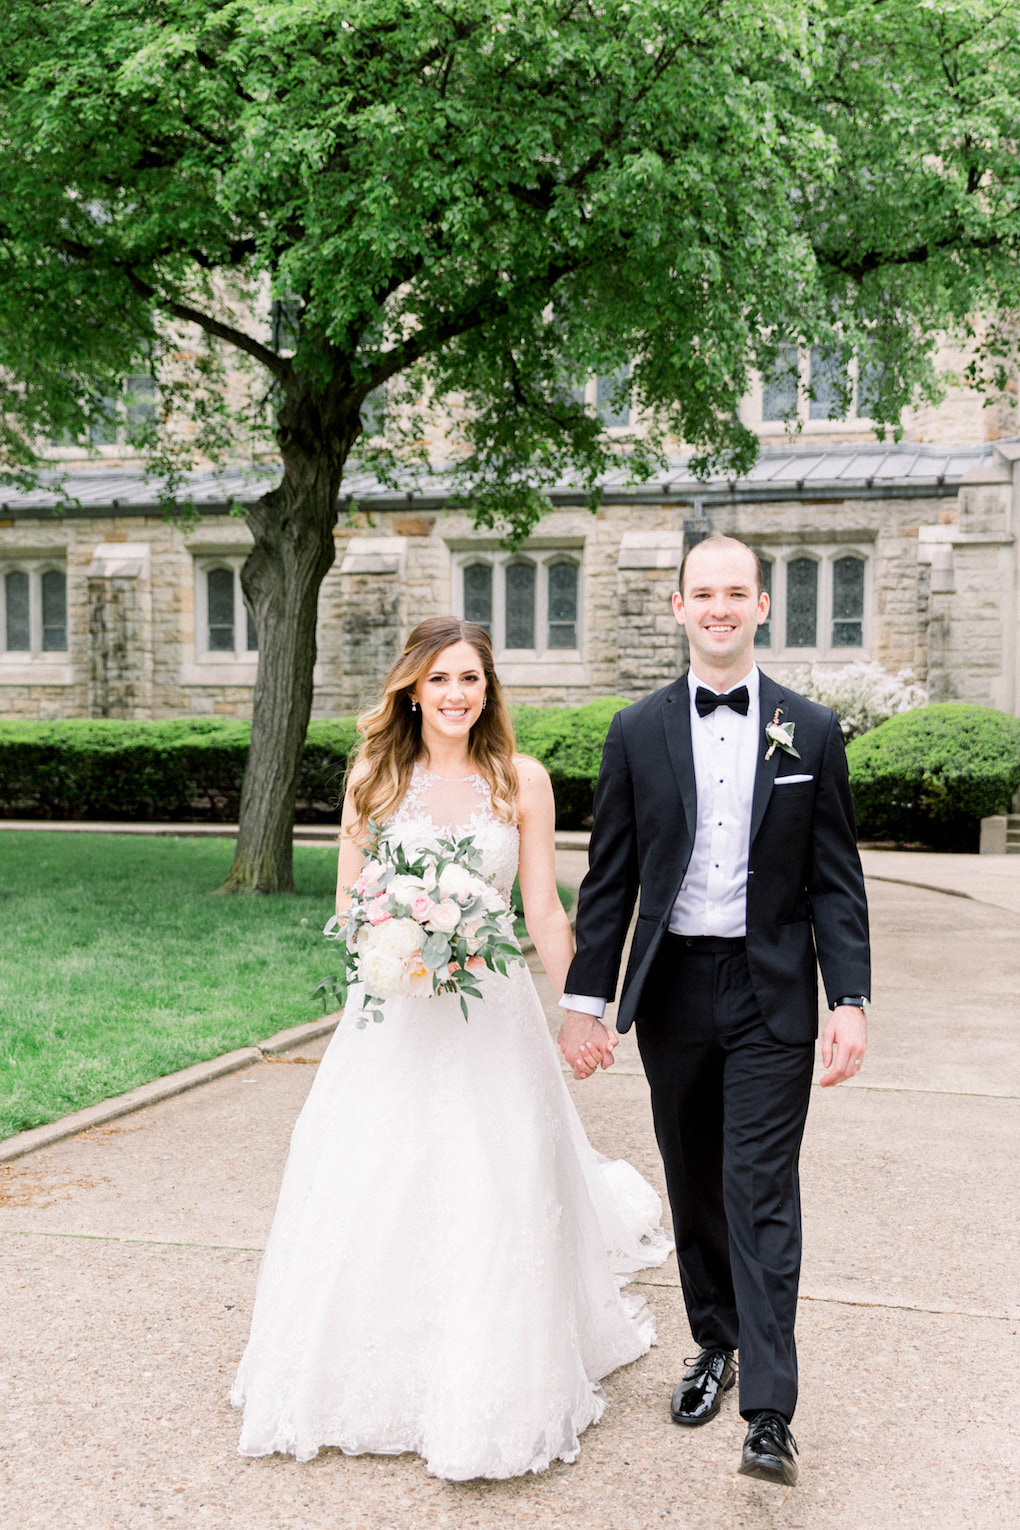 Outdoor wedding photos: Romantic Fairytale wedding at the Omni William Penn in Pittsburgh, PA planned by Exhale Events. Find more wedding inspiration at exhale-events.com!